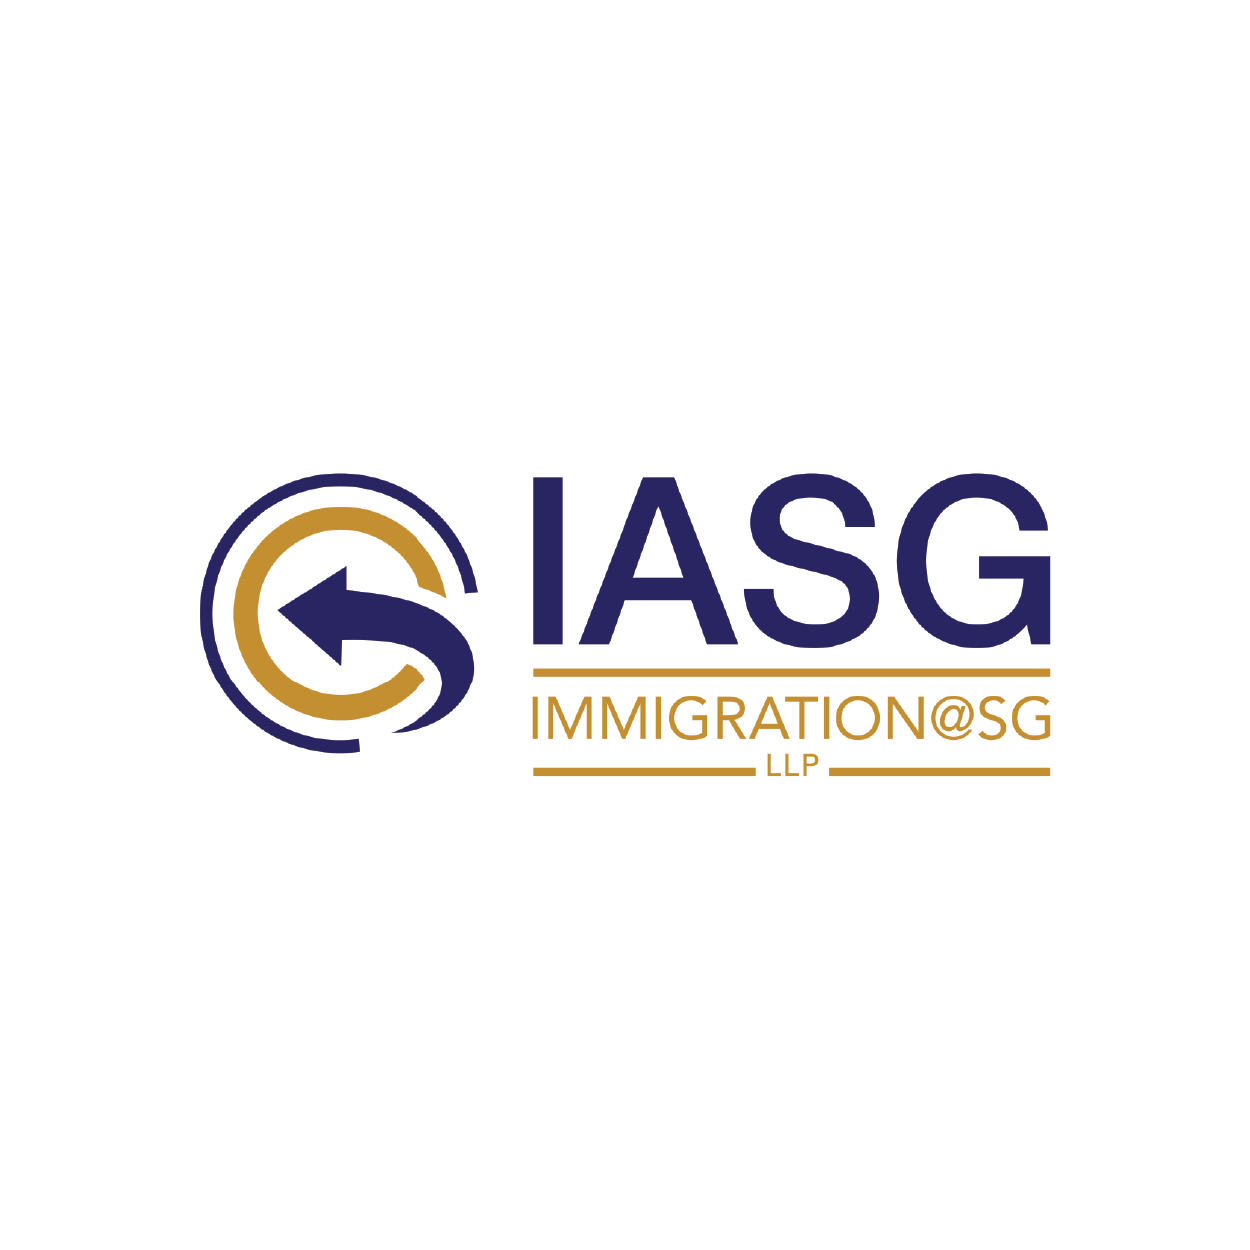 Immigration@SG LLP (IASG)